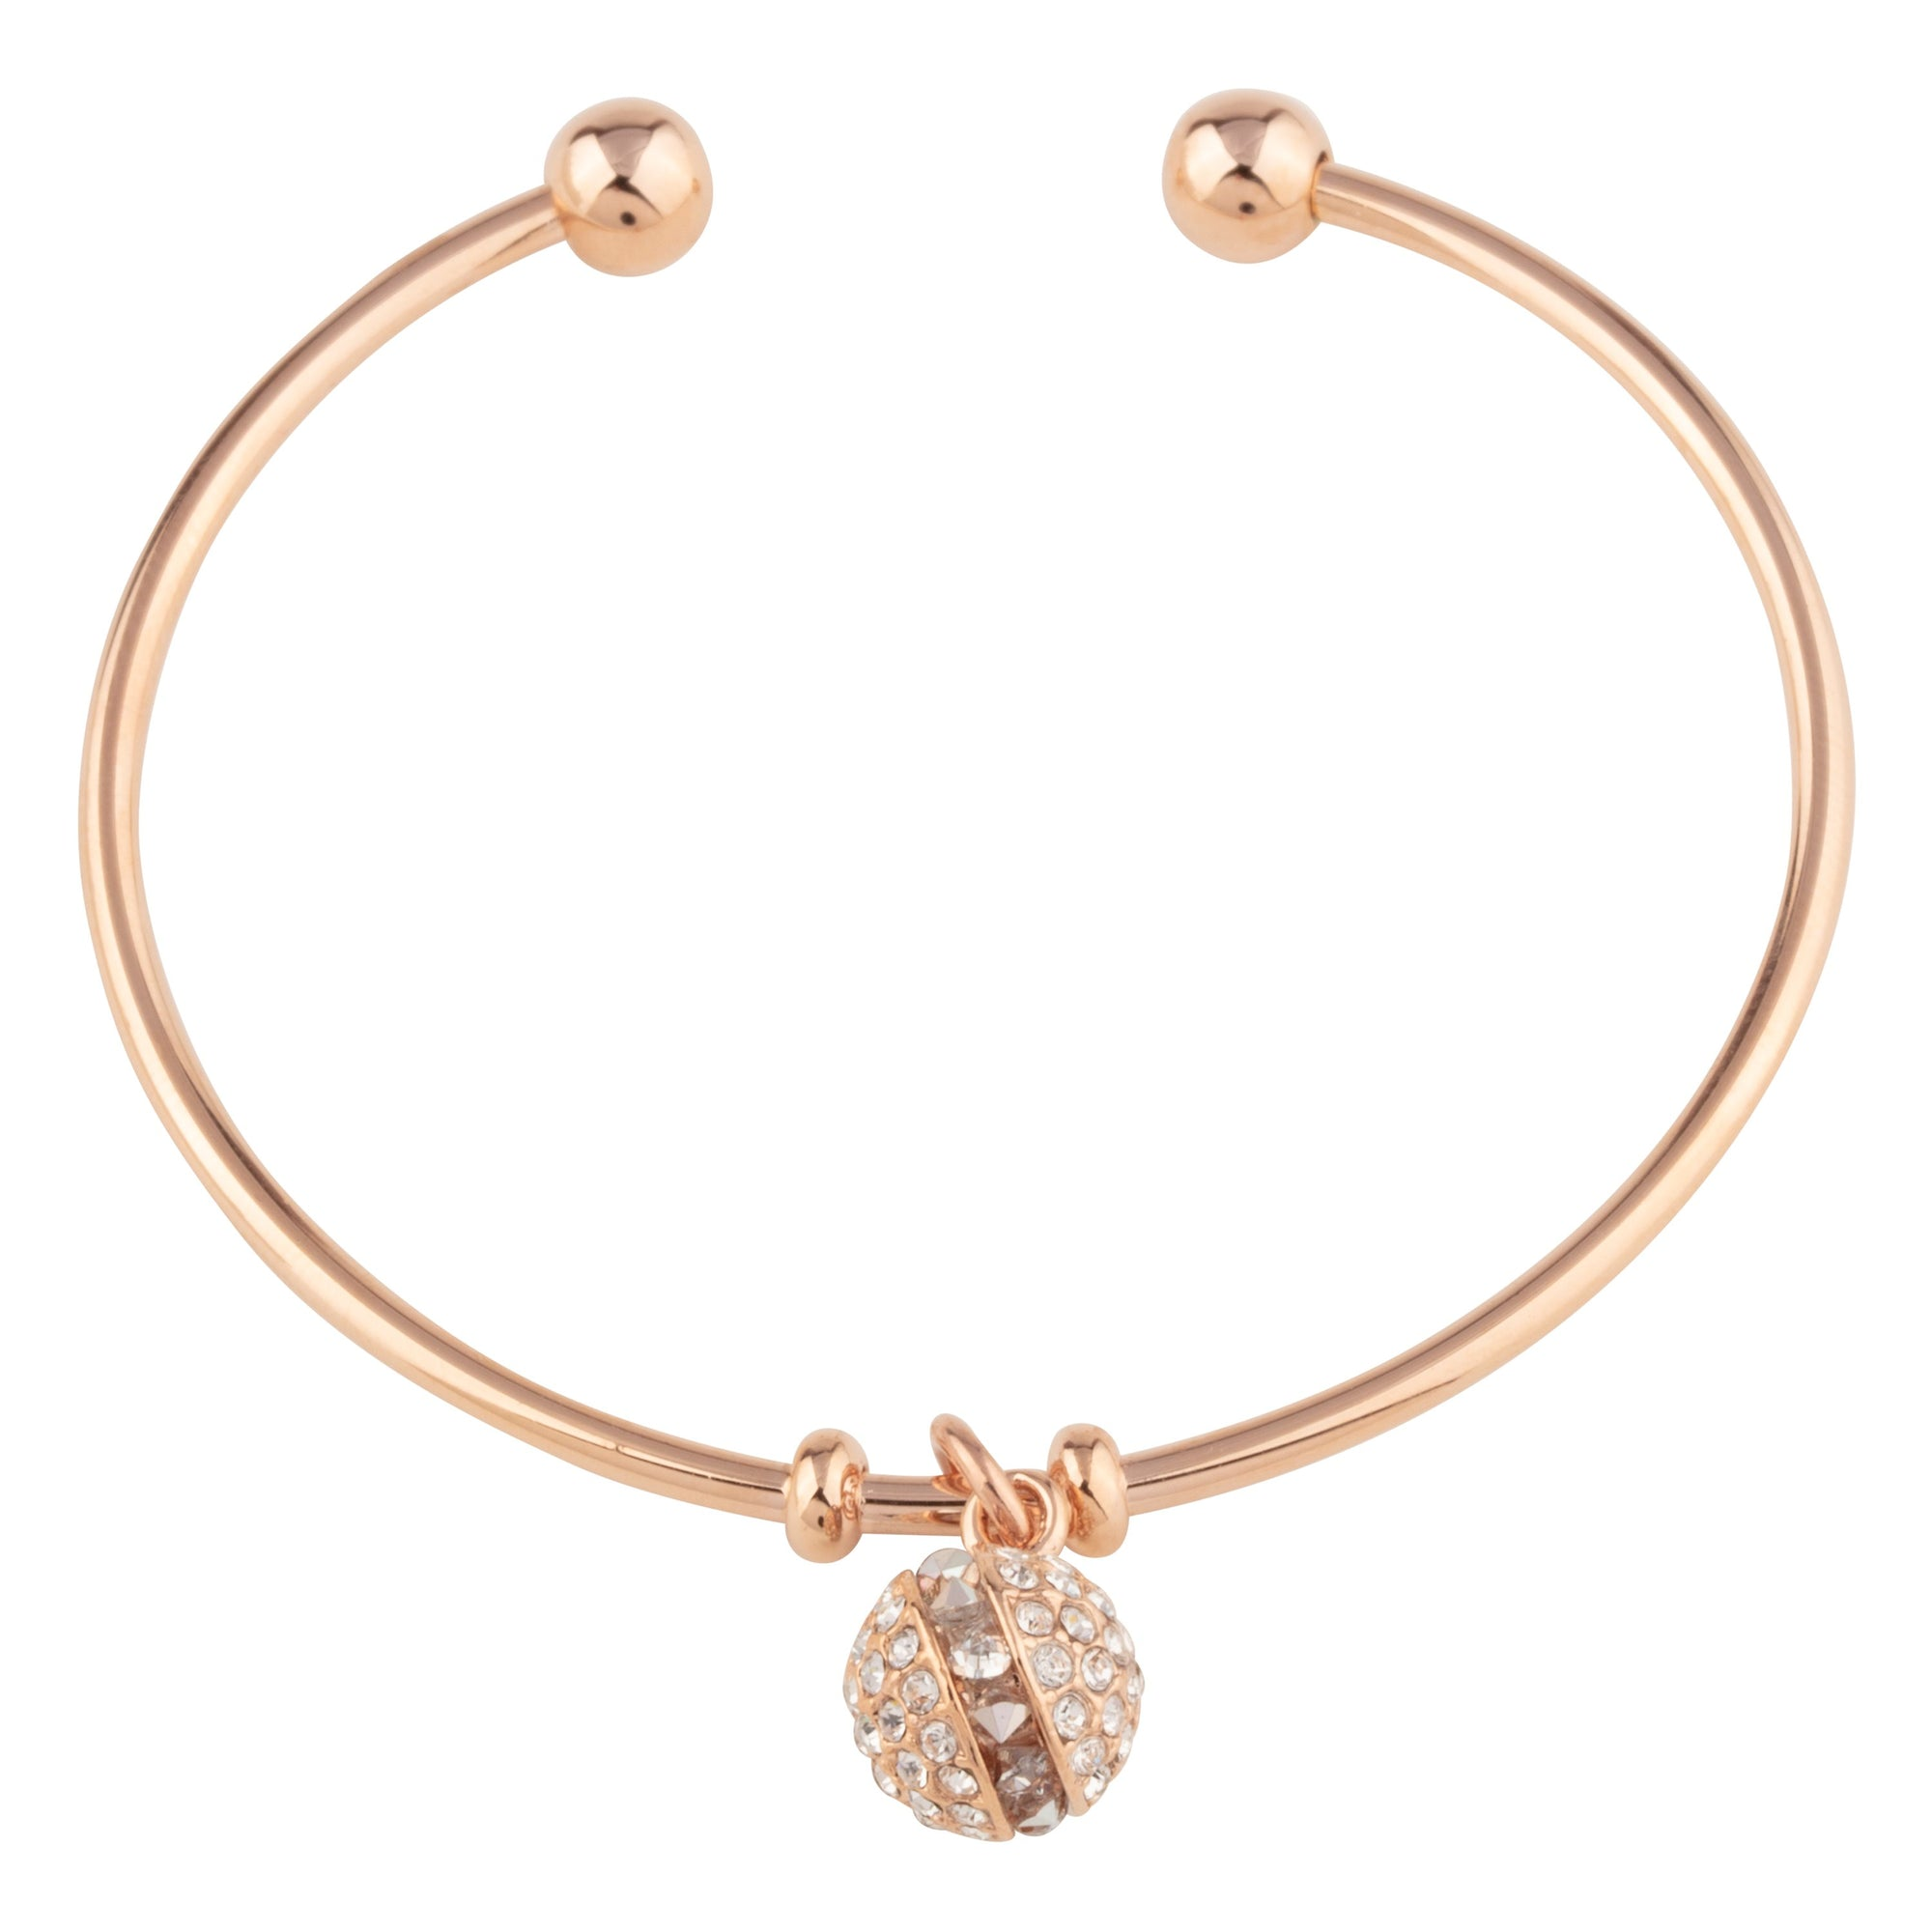 ORION BANGLE BRACELET ROSE GOLD CAL Constellation FOREVER